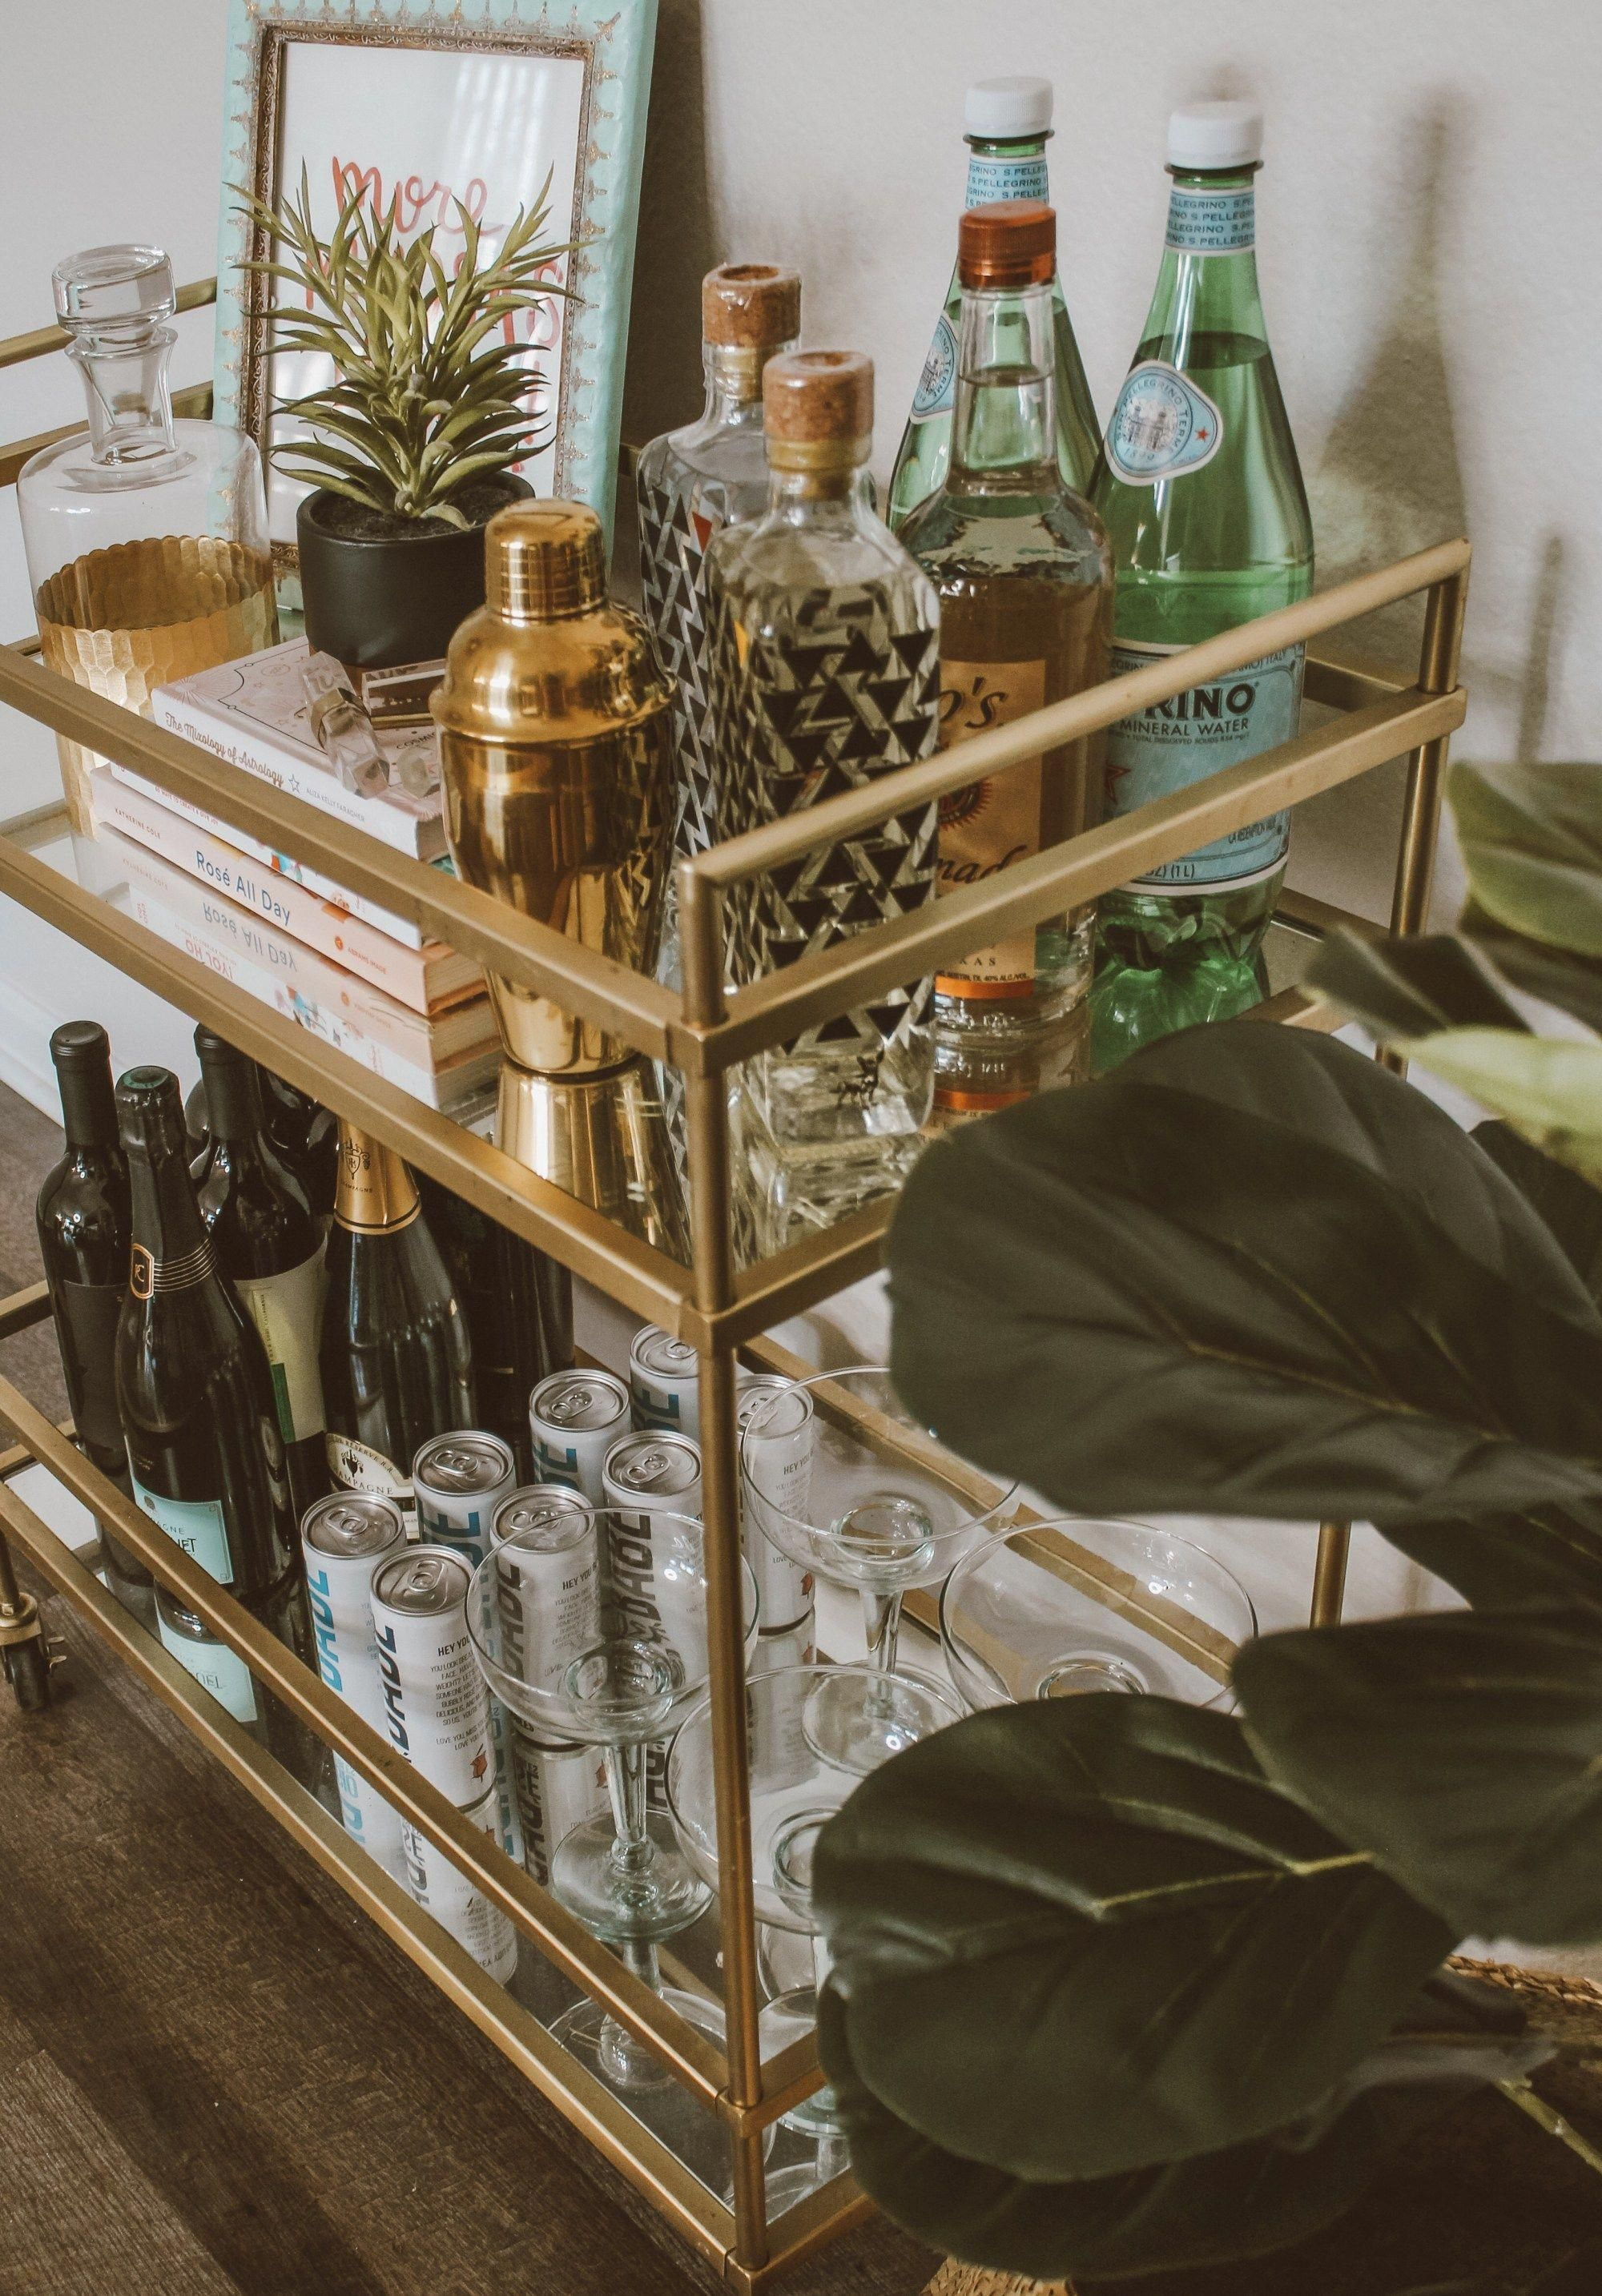 Figure Out More Information On Gold Bar Cart Decor Look Into Our Website In 2020 Bar Cart Decor Bar Cart Styling Gold Bar Cart